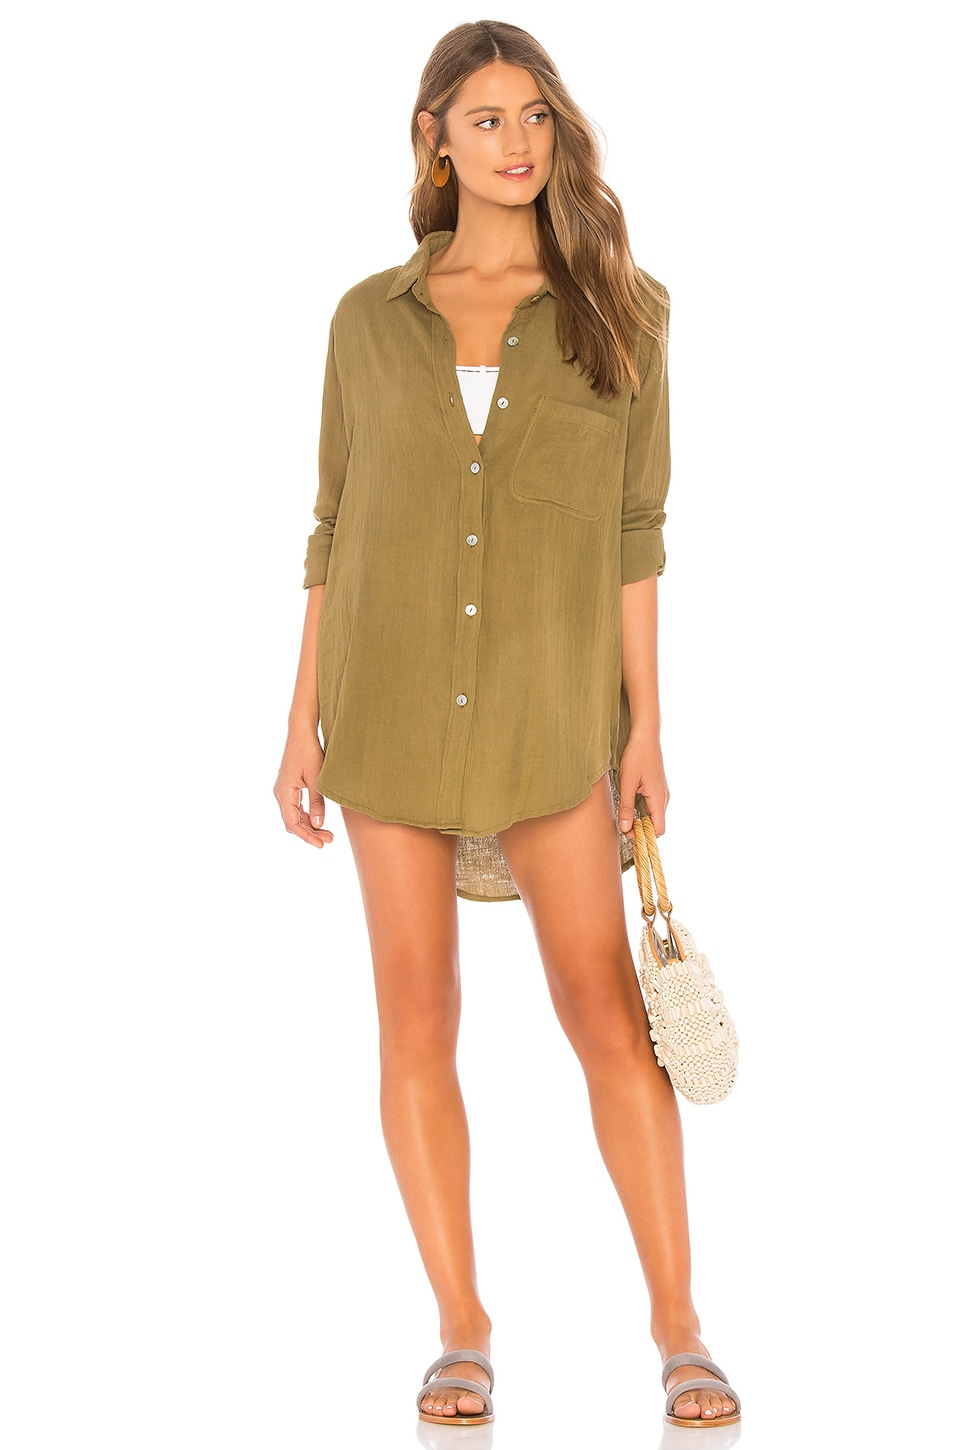 Acacia Swimwear Milos Button Up Dress in Olive